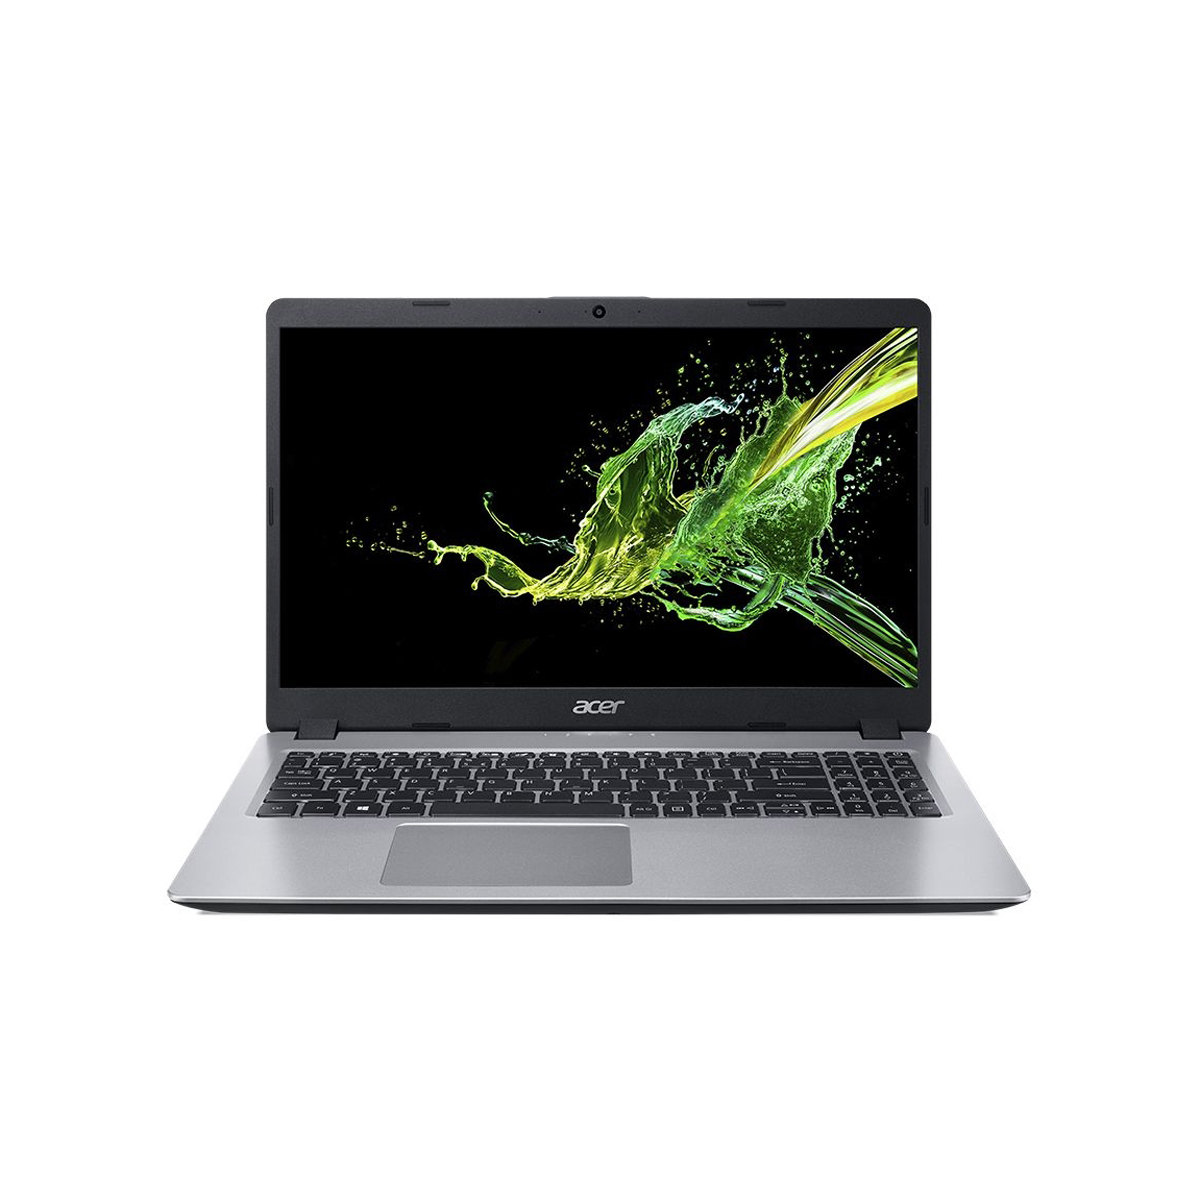 Notebook Acer A515 Core I5 8265u Memoria 8gb Ddr4 Hd 1tb Ssd 240gb Tela 15.6' Led Hd Sistema Windows 10 Home